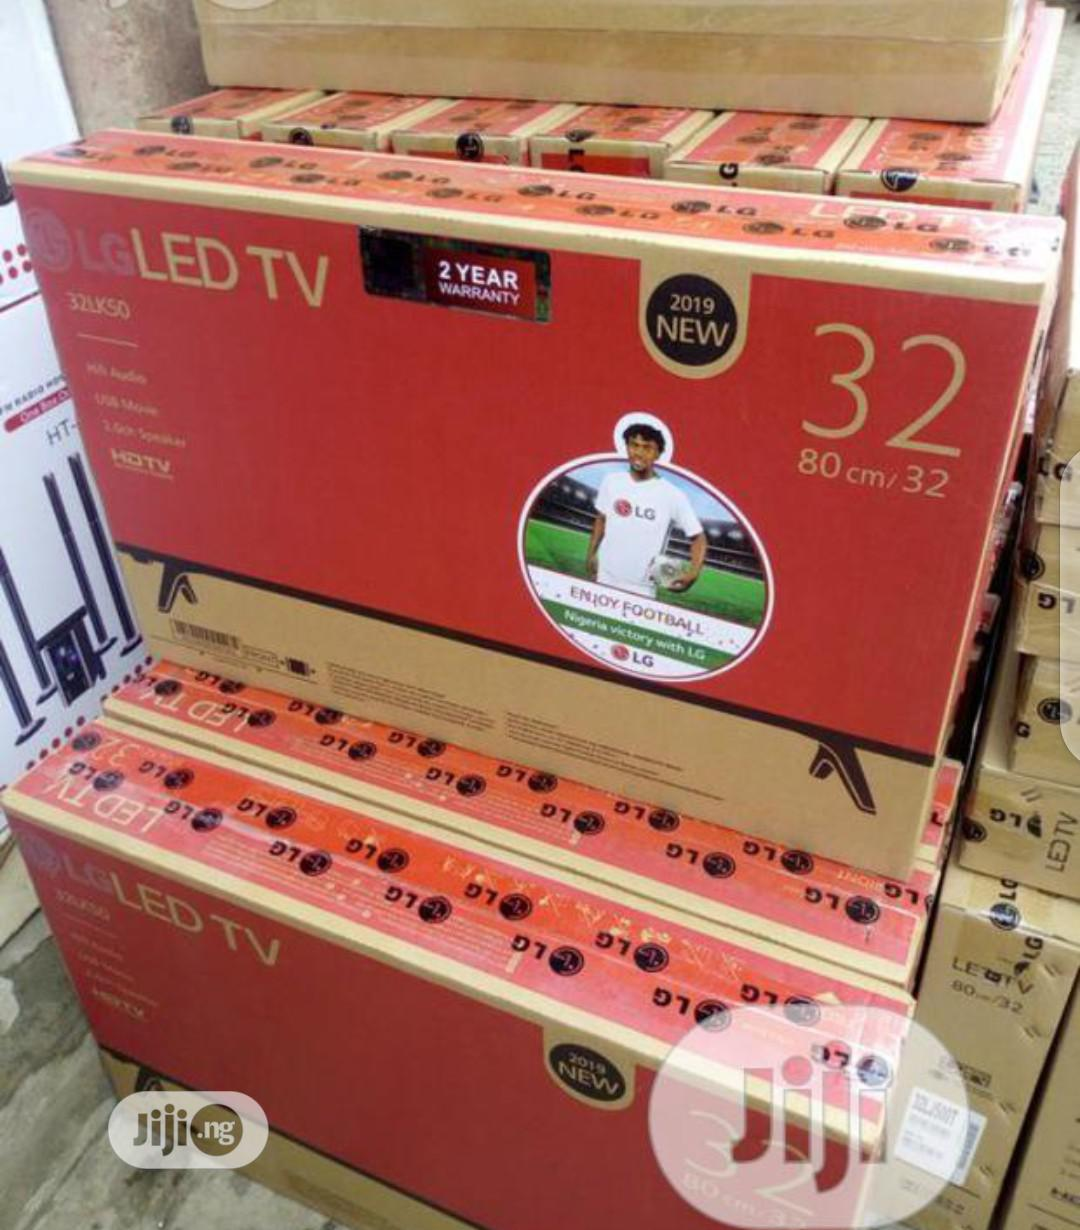 LG TV 32 Inches | TV & DVD Equipment for sale in Ojo, Lagos State, Nigeria